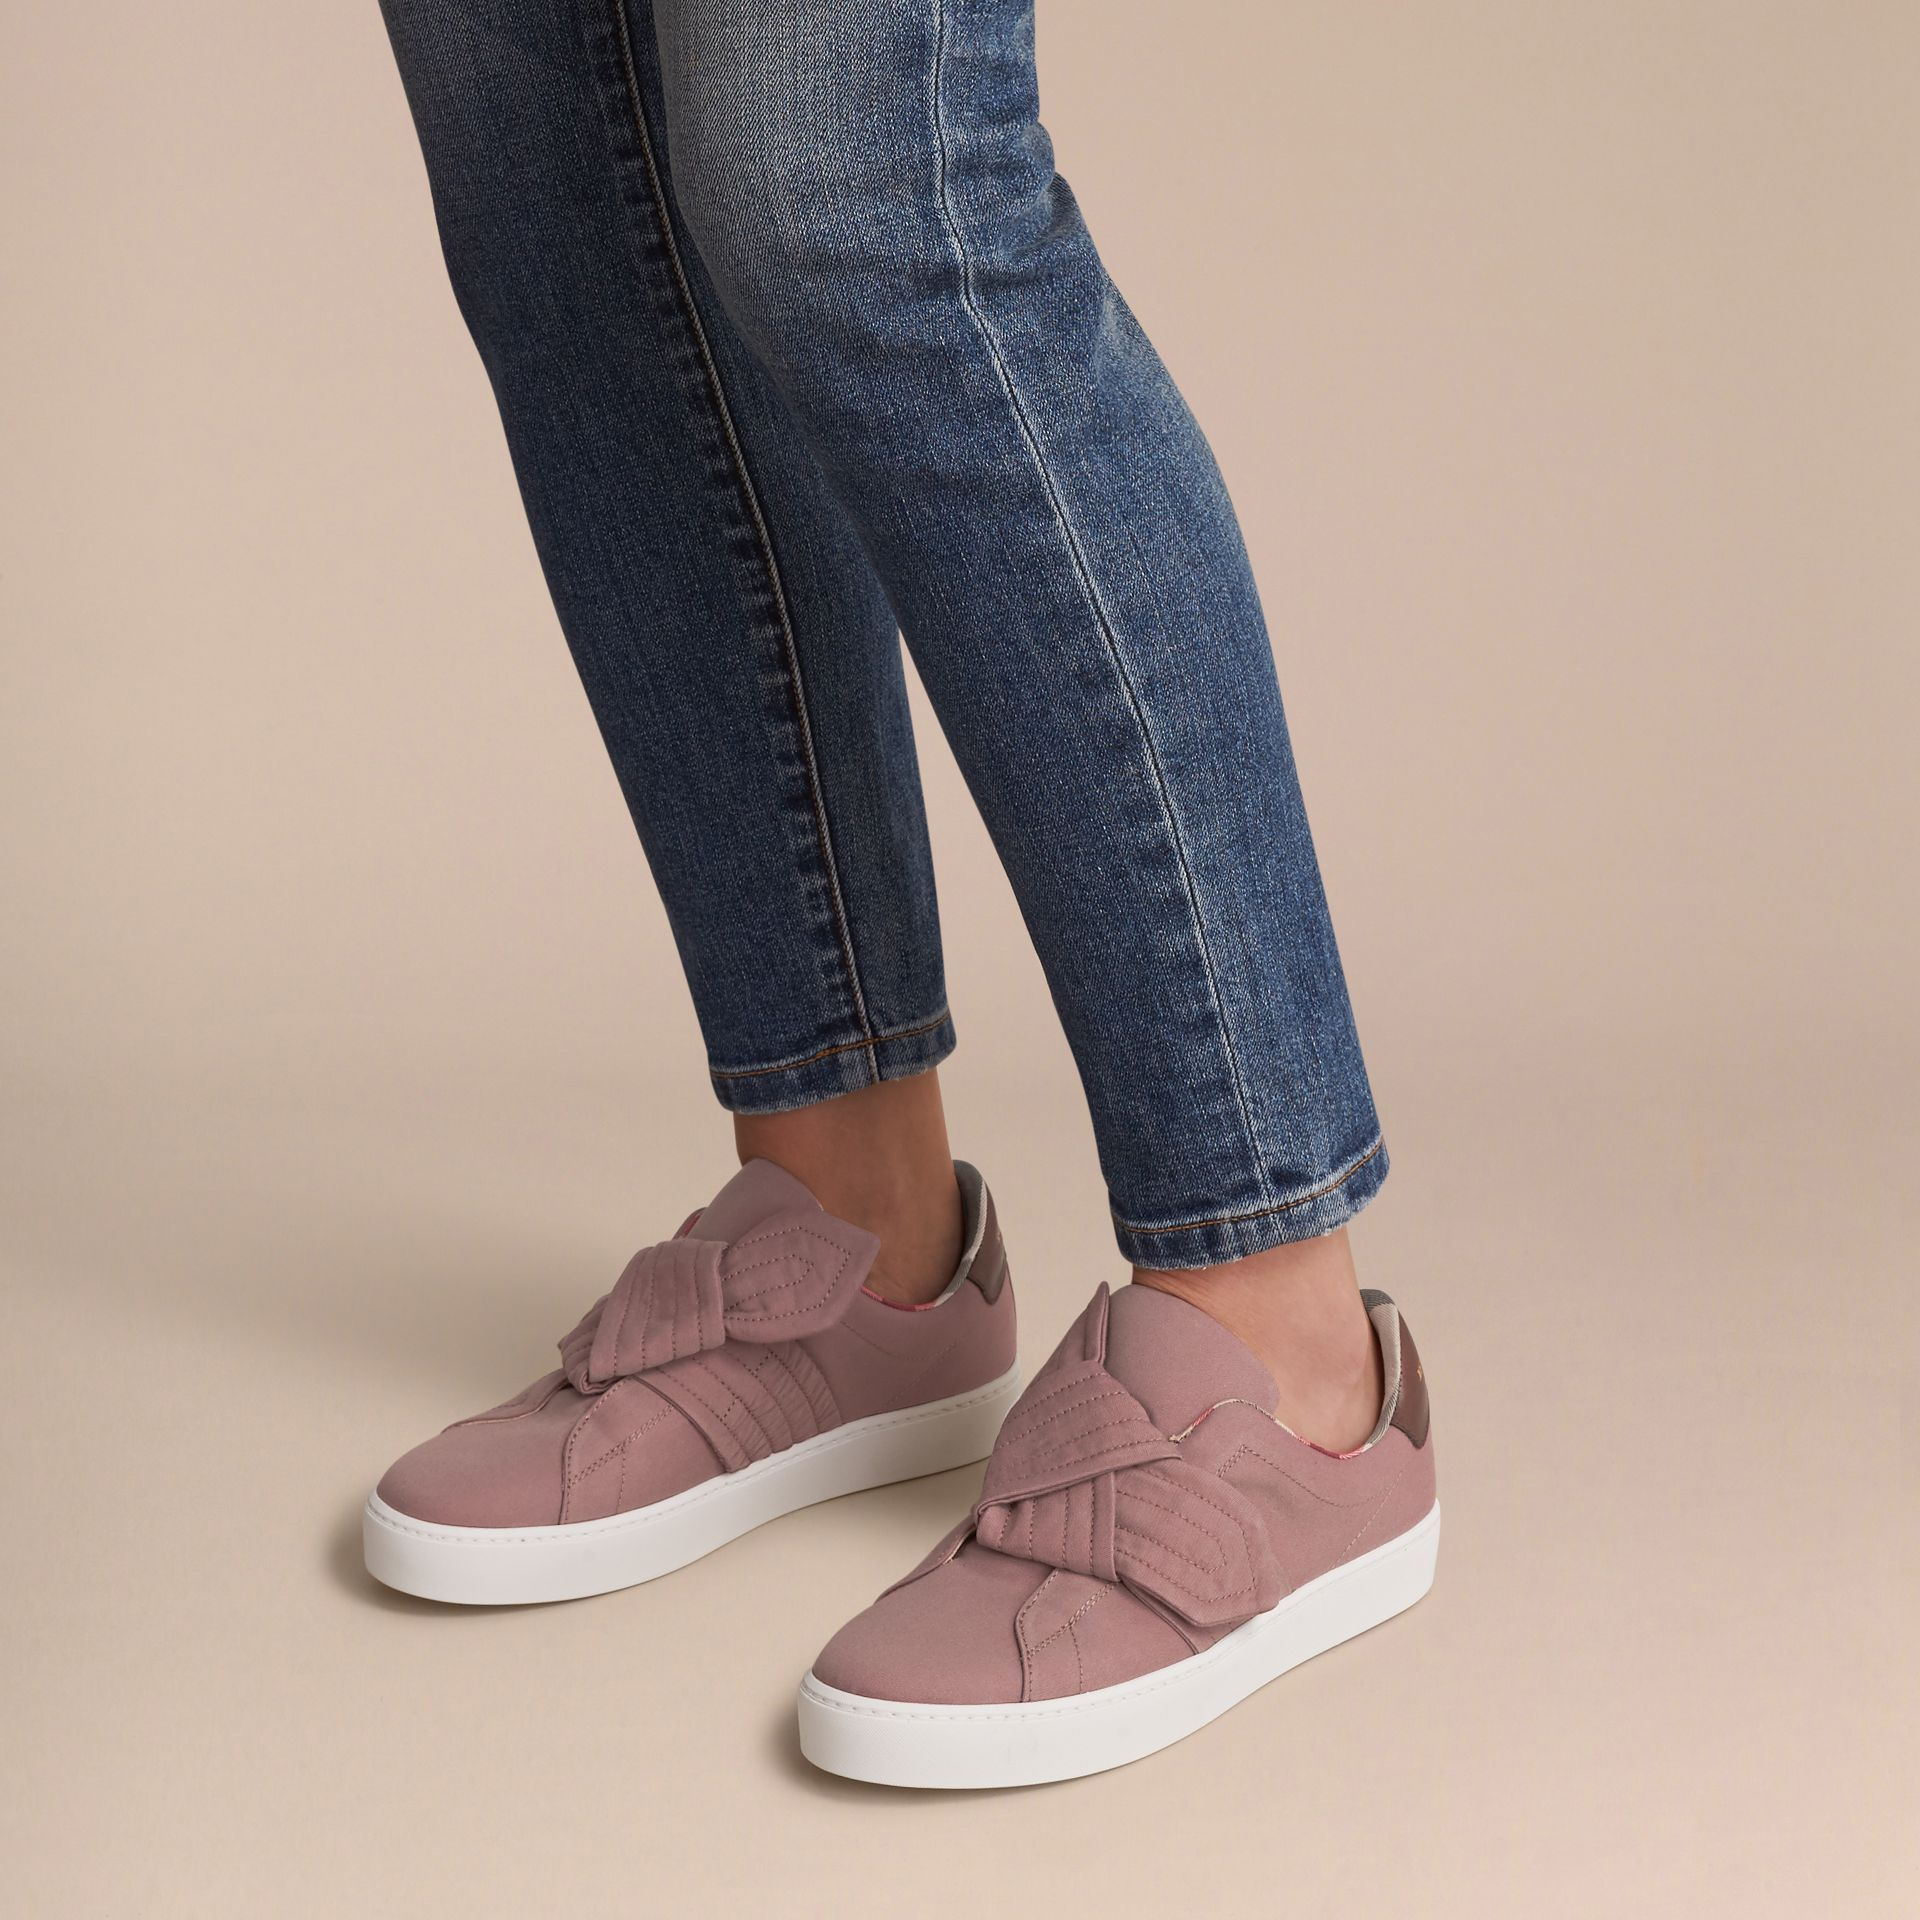 Sneakers avec nœud trench (Rose Antique) - Femme | Burberry - photo de la galerie 3